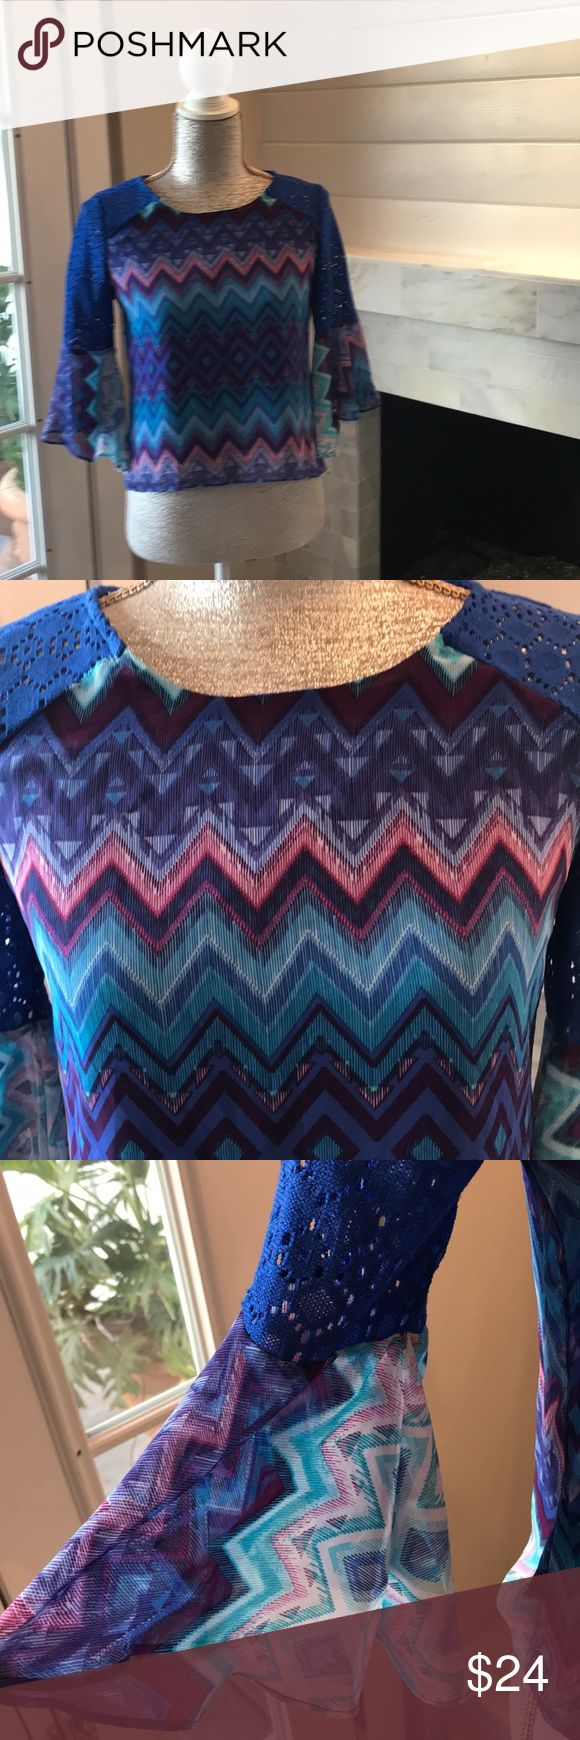 """Tribal Printed Bell Flutter Sleeve Top - Like New! Lined.  Measurements laid flat:  Front 20"""" long.  Back 22"""" long.  Under Arms -17.5"""".  Midsection - 17.5"""".  Across bottom - 19"""".  Sleeves - 15"""" long. Amy Byer Tops"""